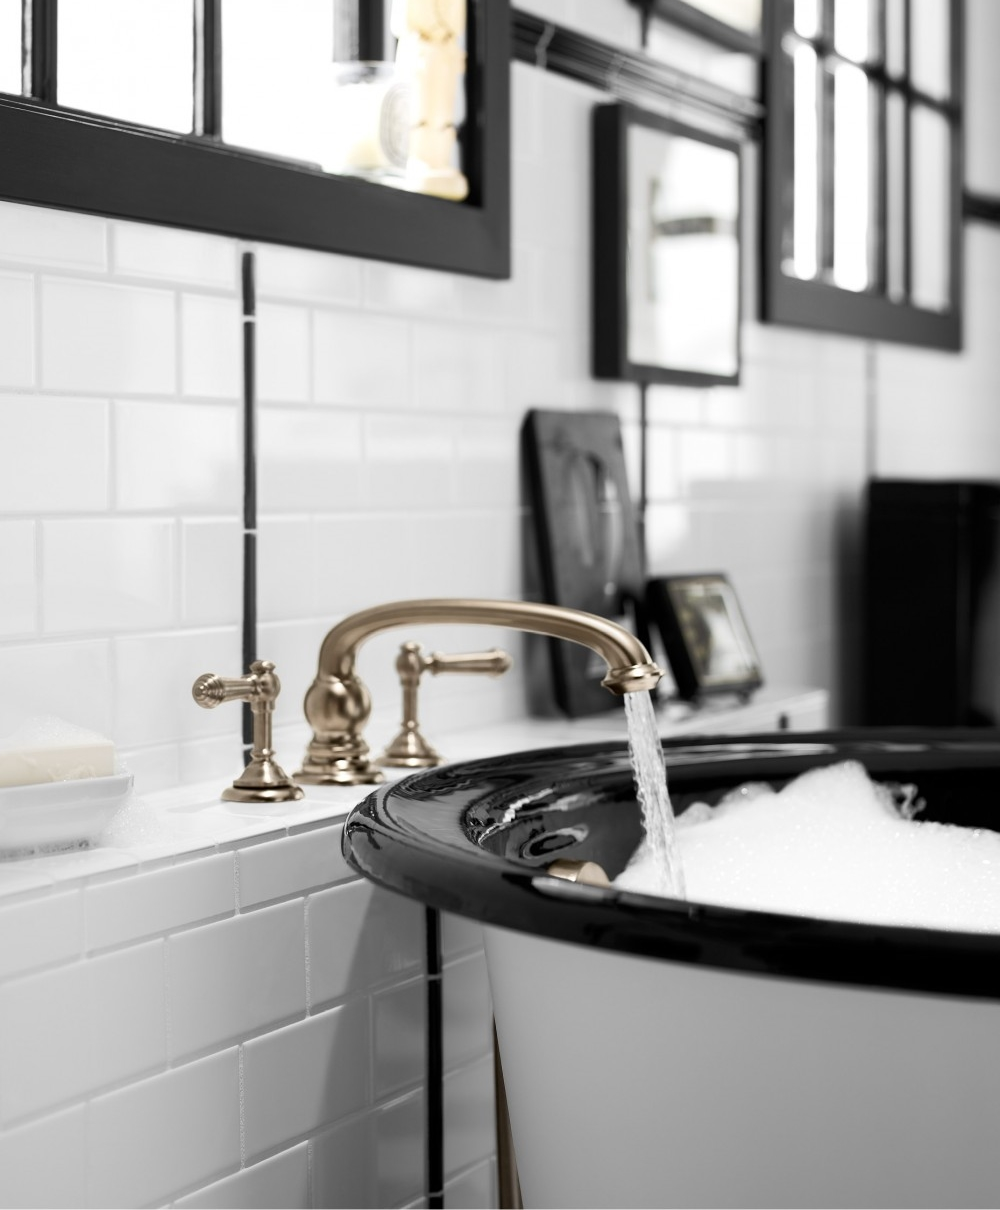 Artifacts Bath Faucet 72778, Iron Works Historic Tub 710